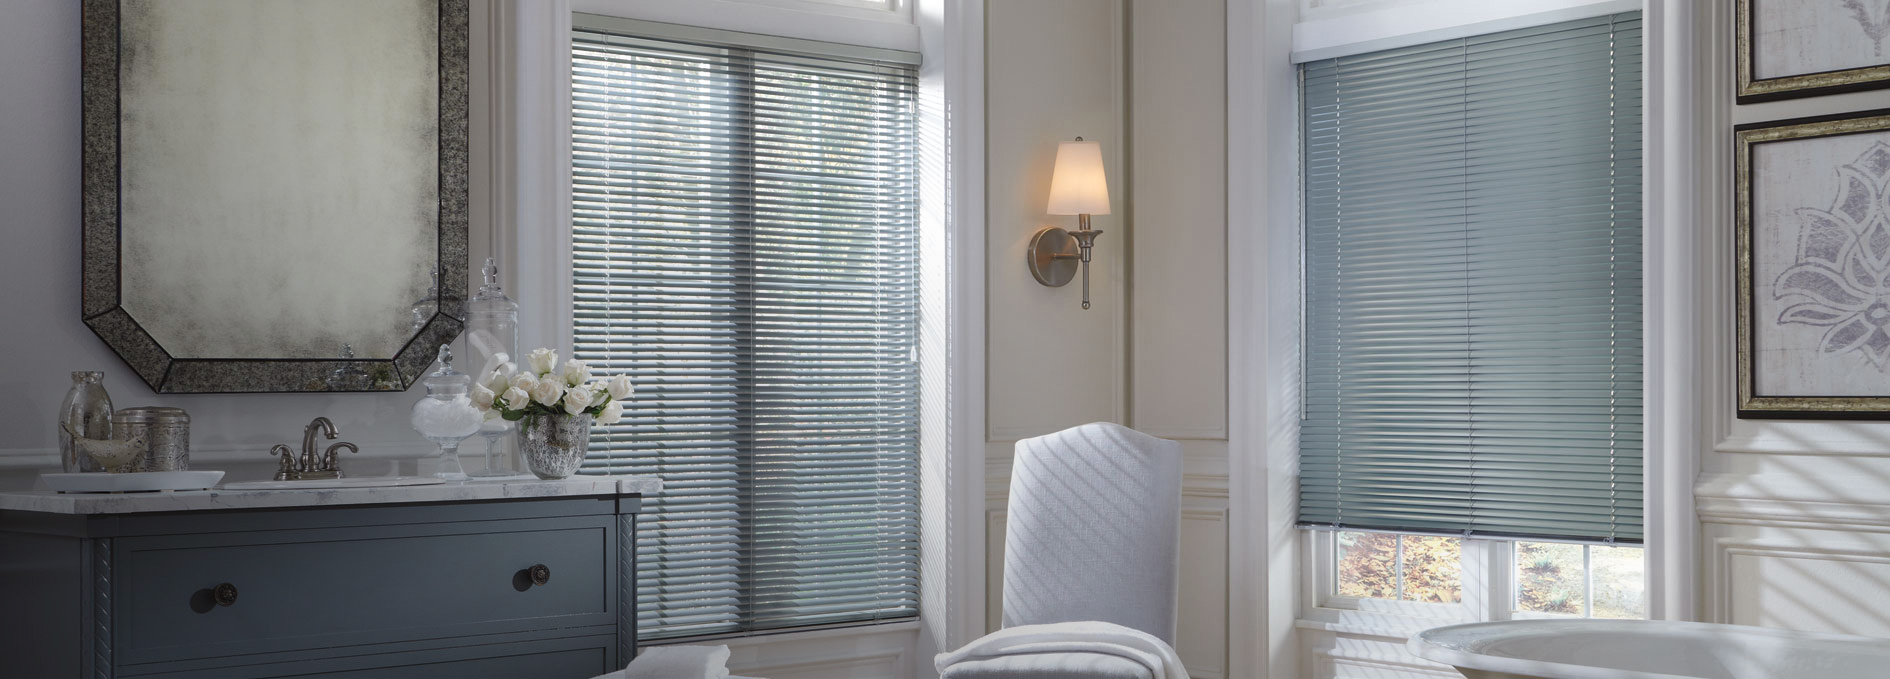 Hunter Douglas Celebrity 174 Blinds Today S Window Fashions